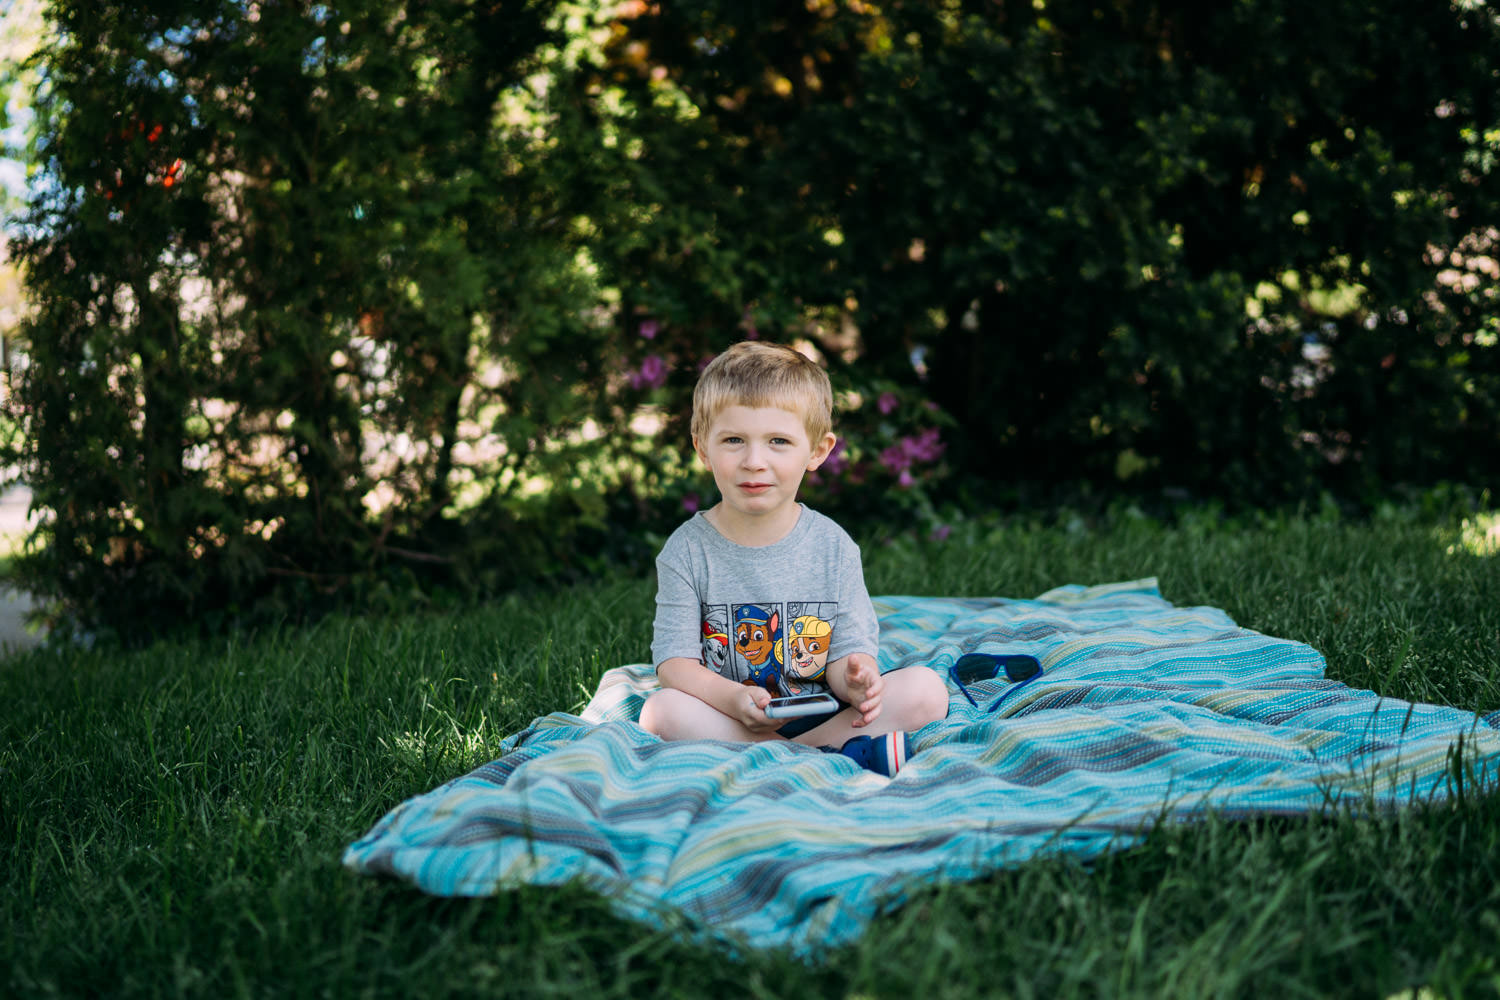 A little boy sits on a blanket on the grass.